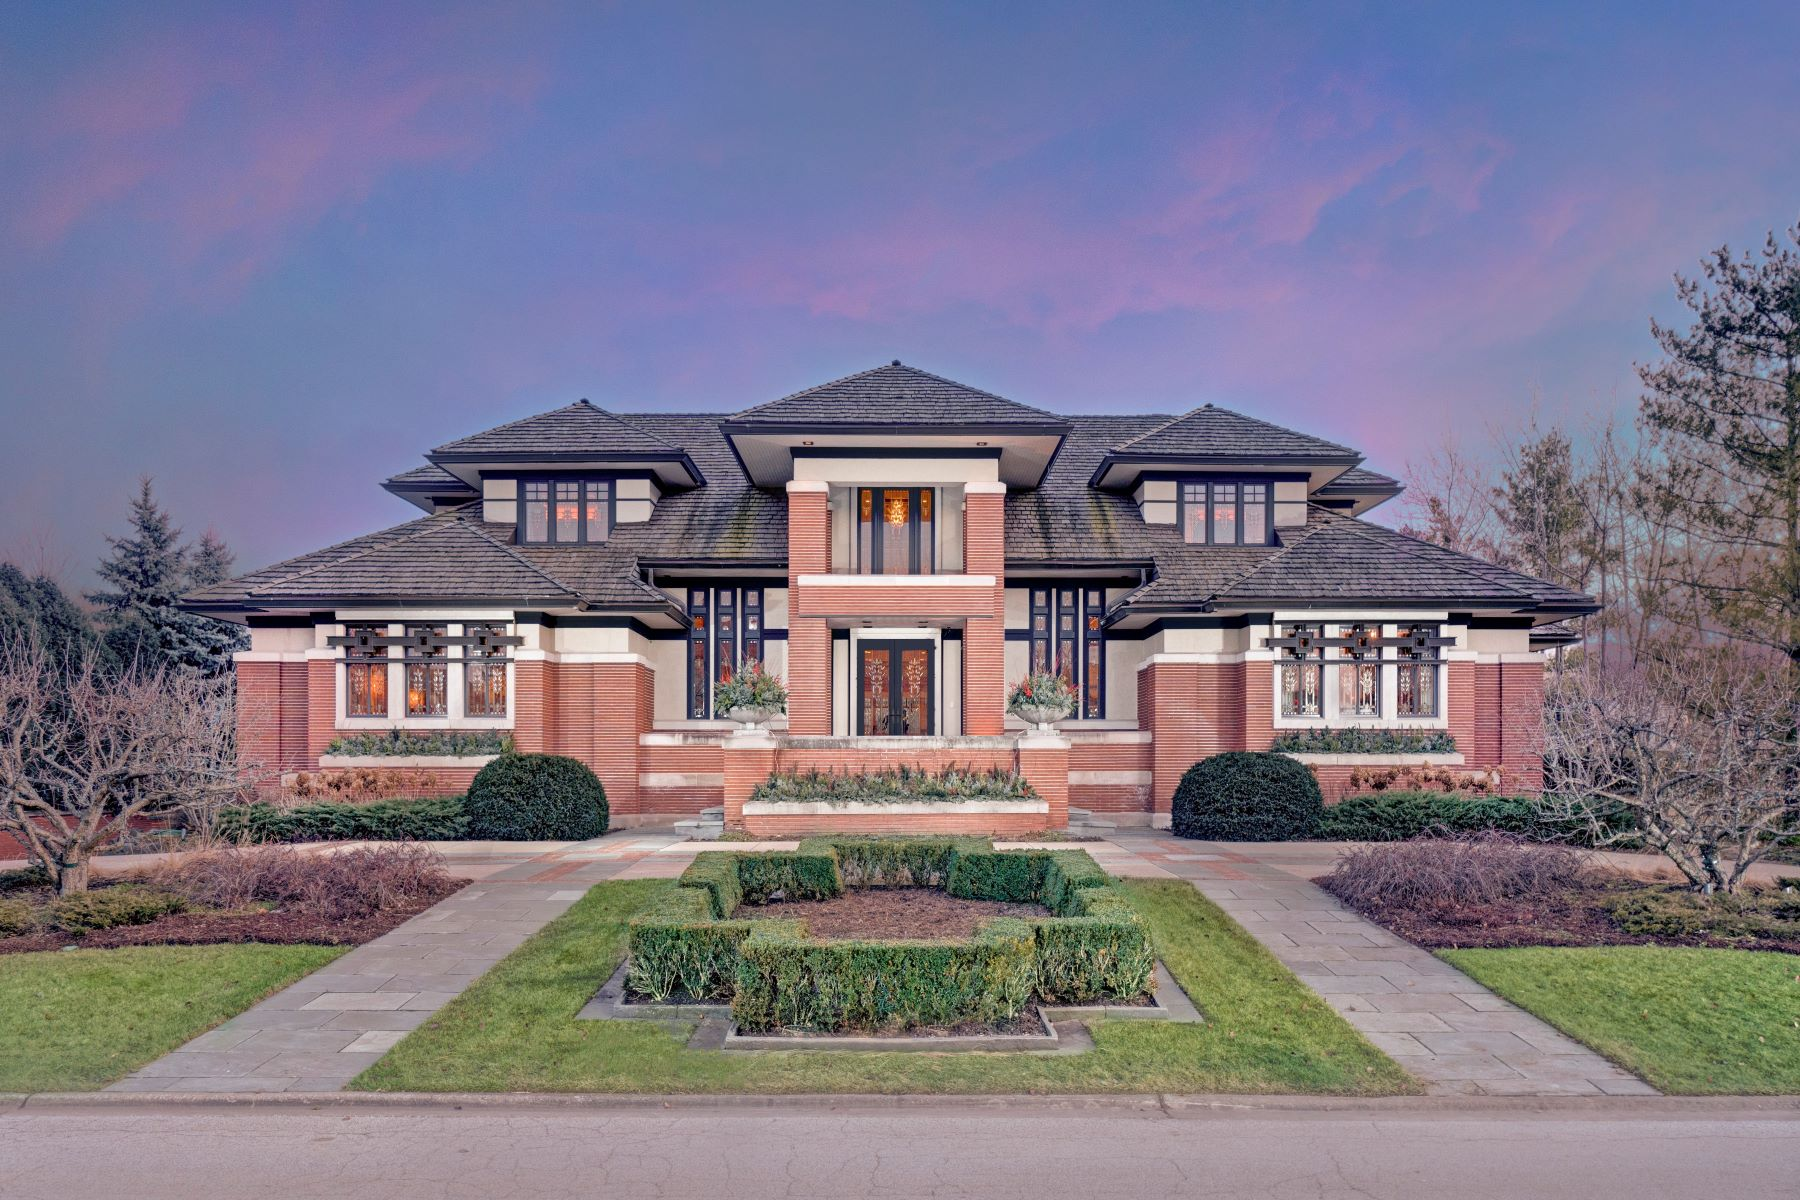 Single Family Homes for Active at Spectacular Frank Lloyd Wright inspired Home 111 Singletree Road Orland Park, Illinois 60467 United States